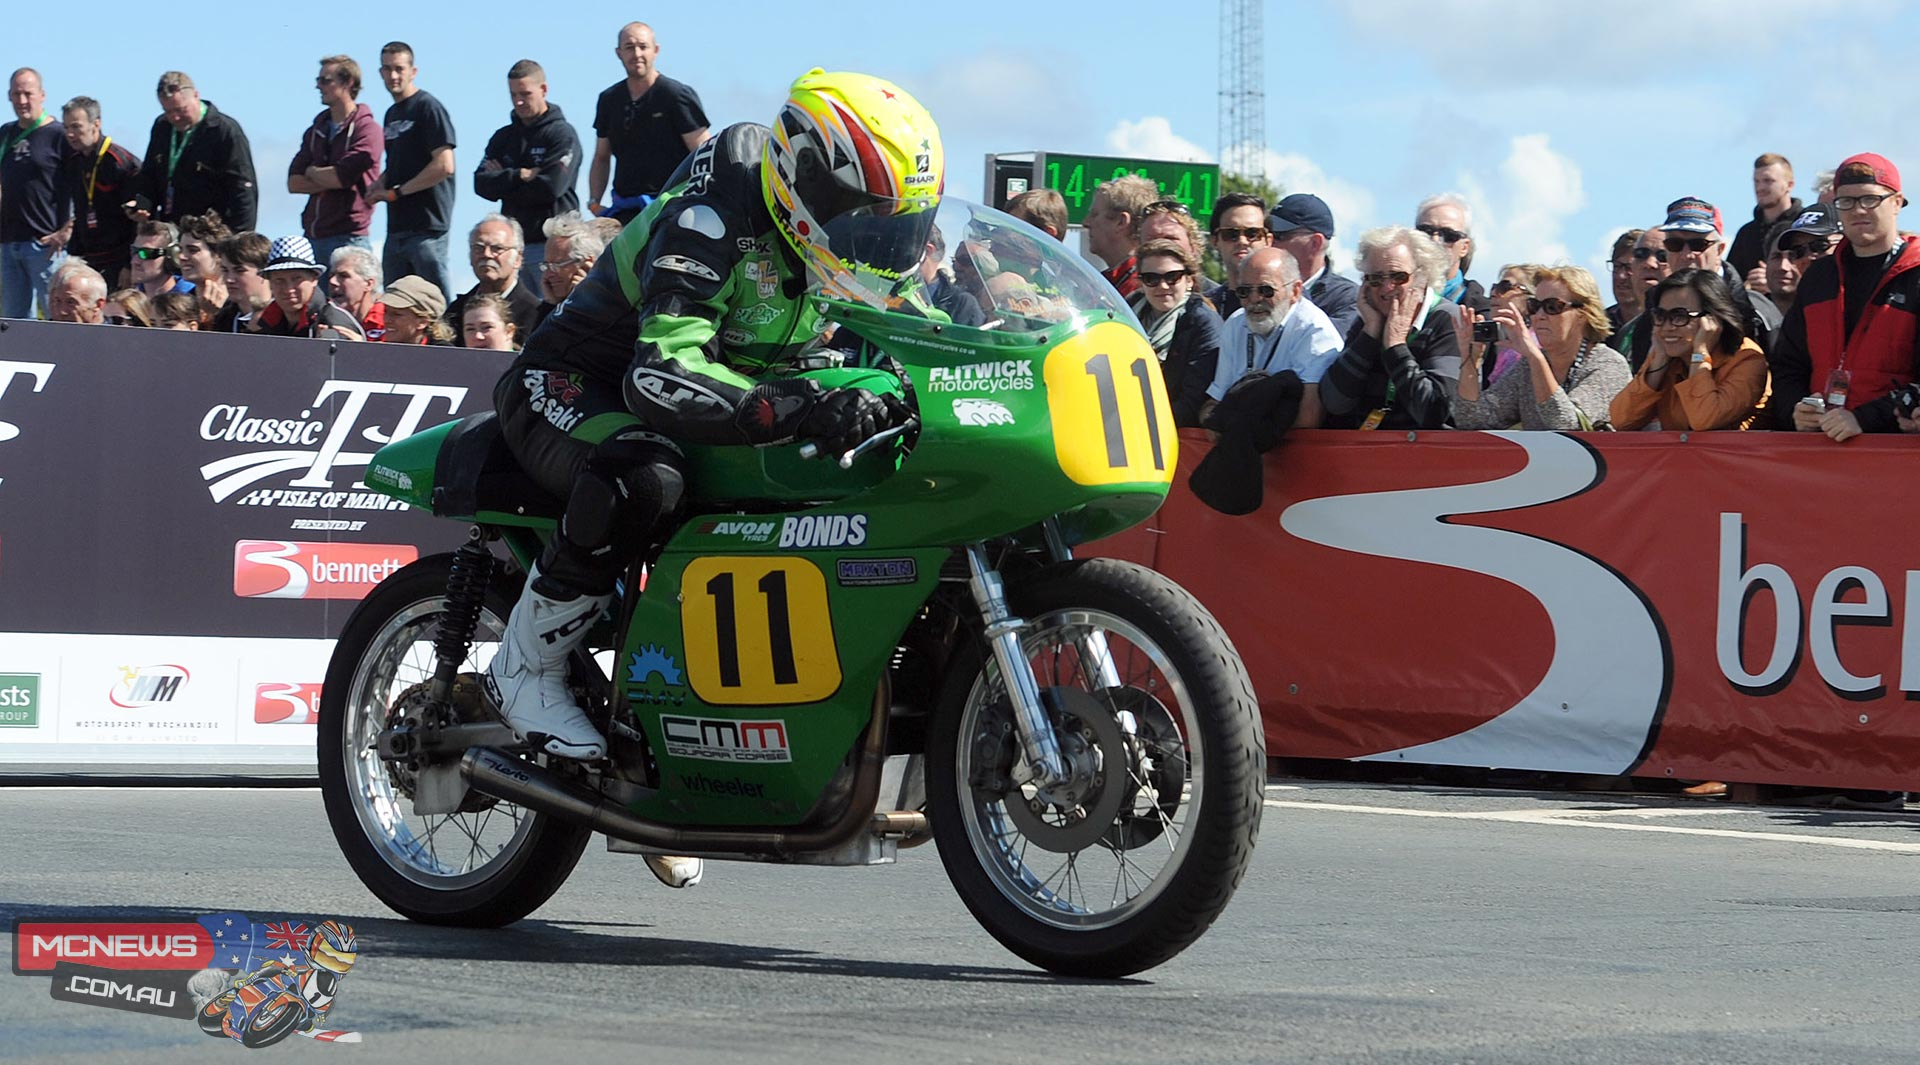 Ian Lougher sets off on the 500cc Paton